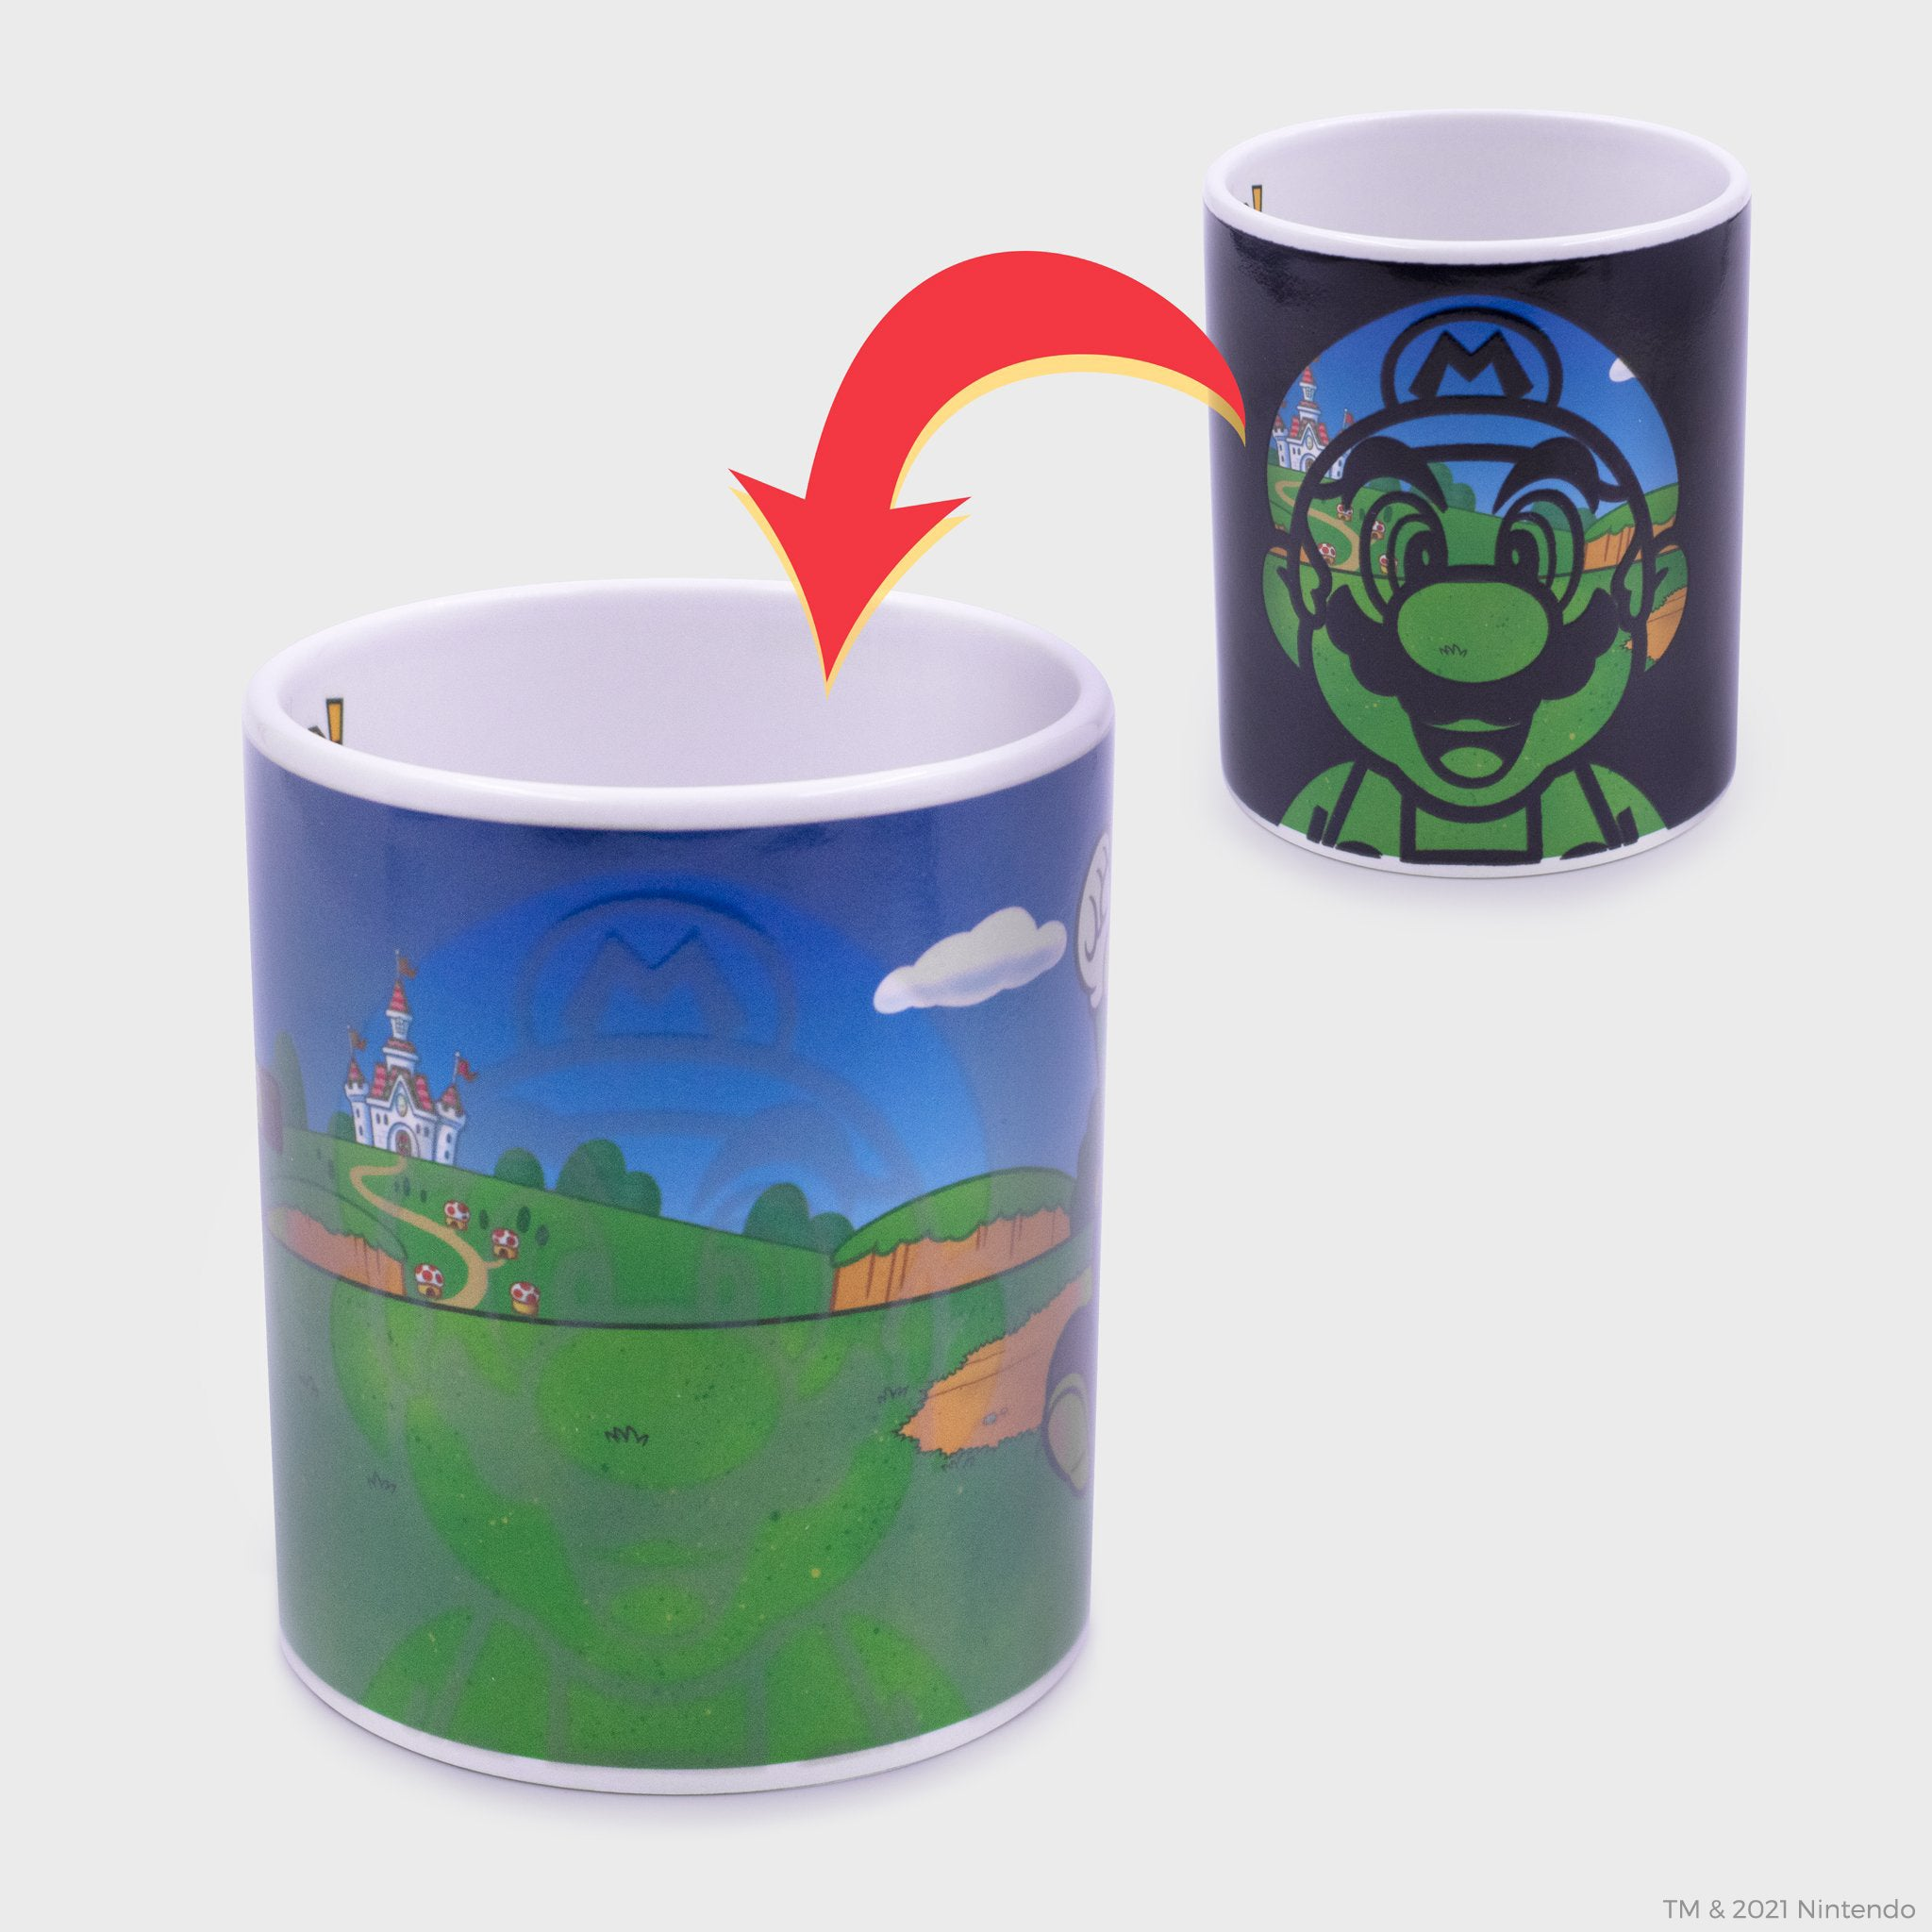 super mario nintendo mario luigi collector's box collectible exclusive mug heat changing drinkware kitchenware culturefly